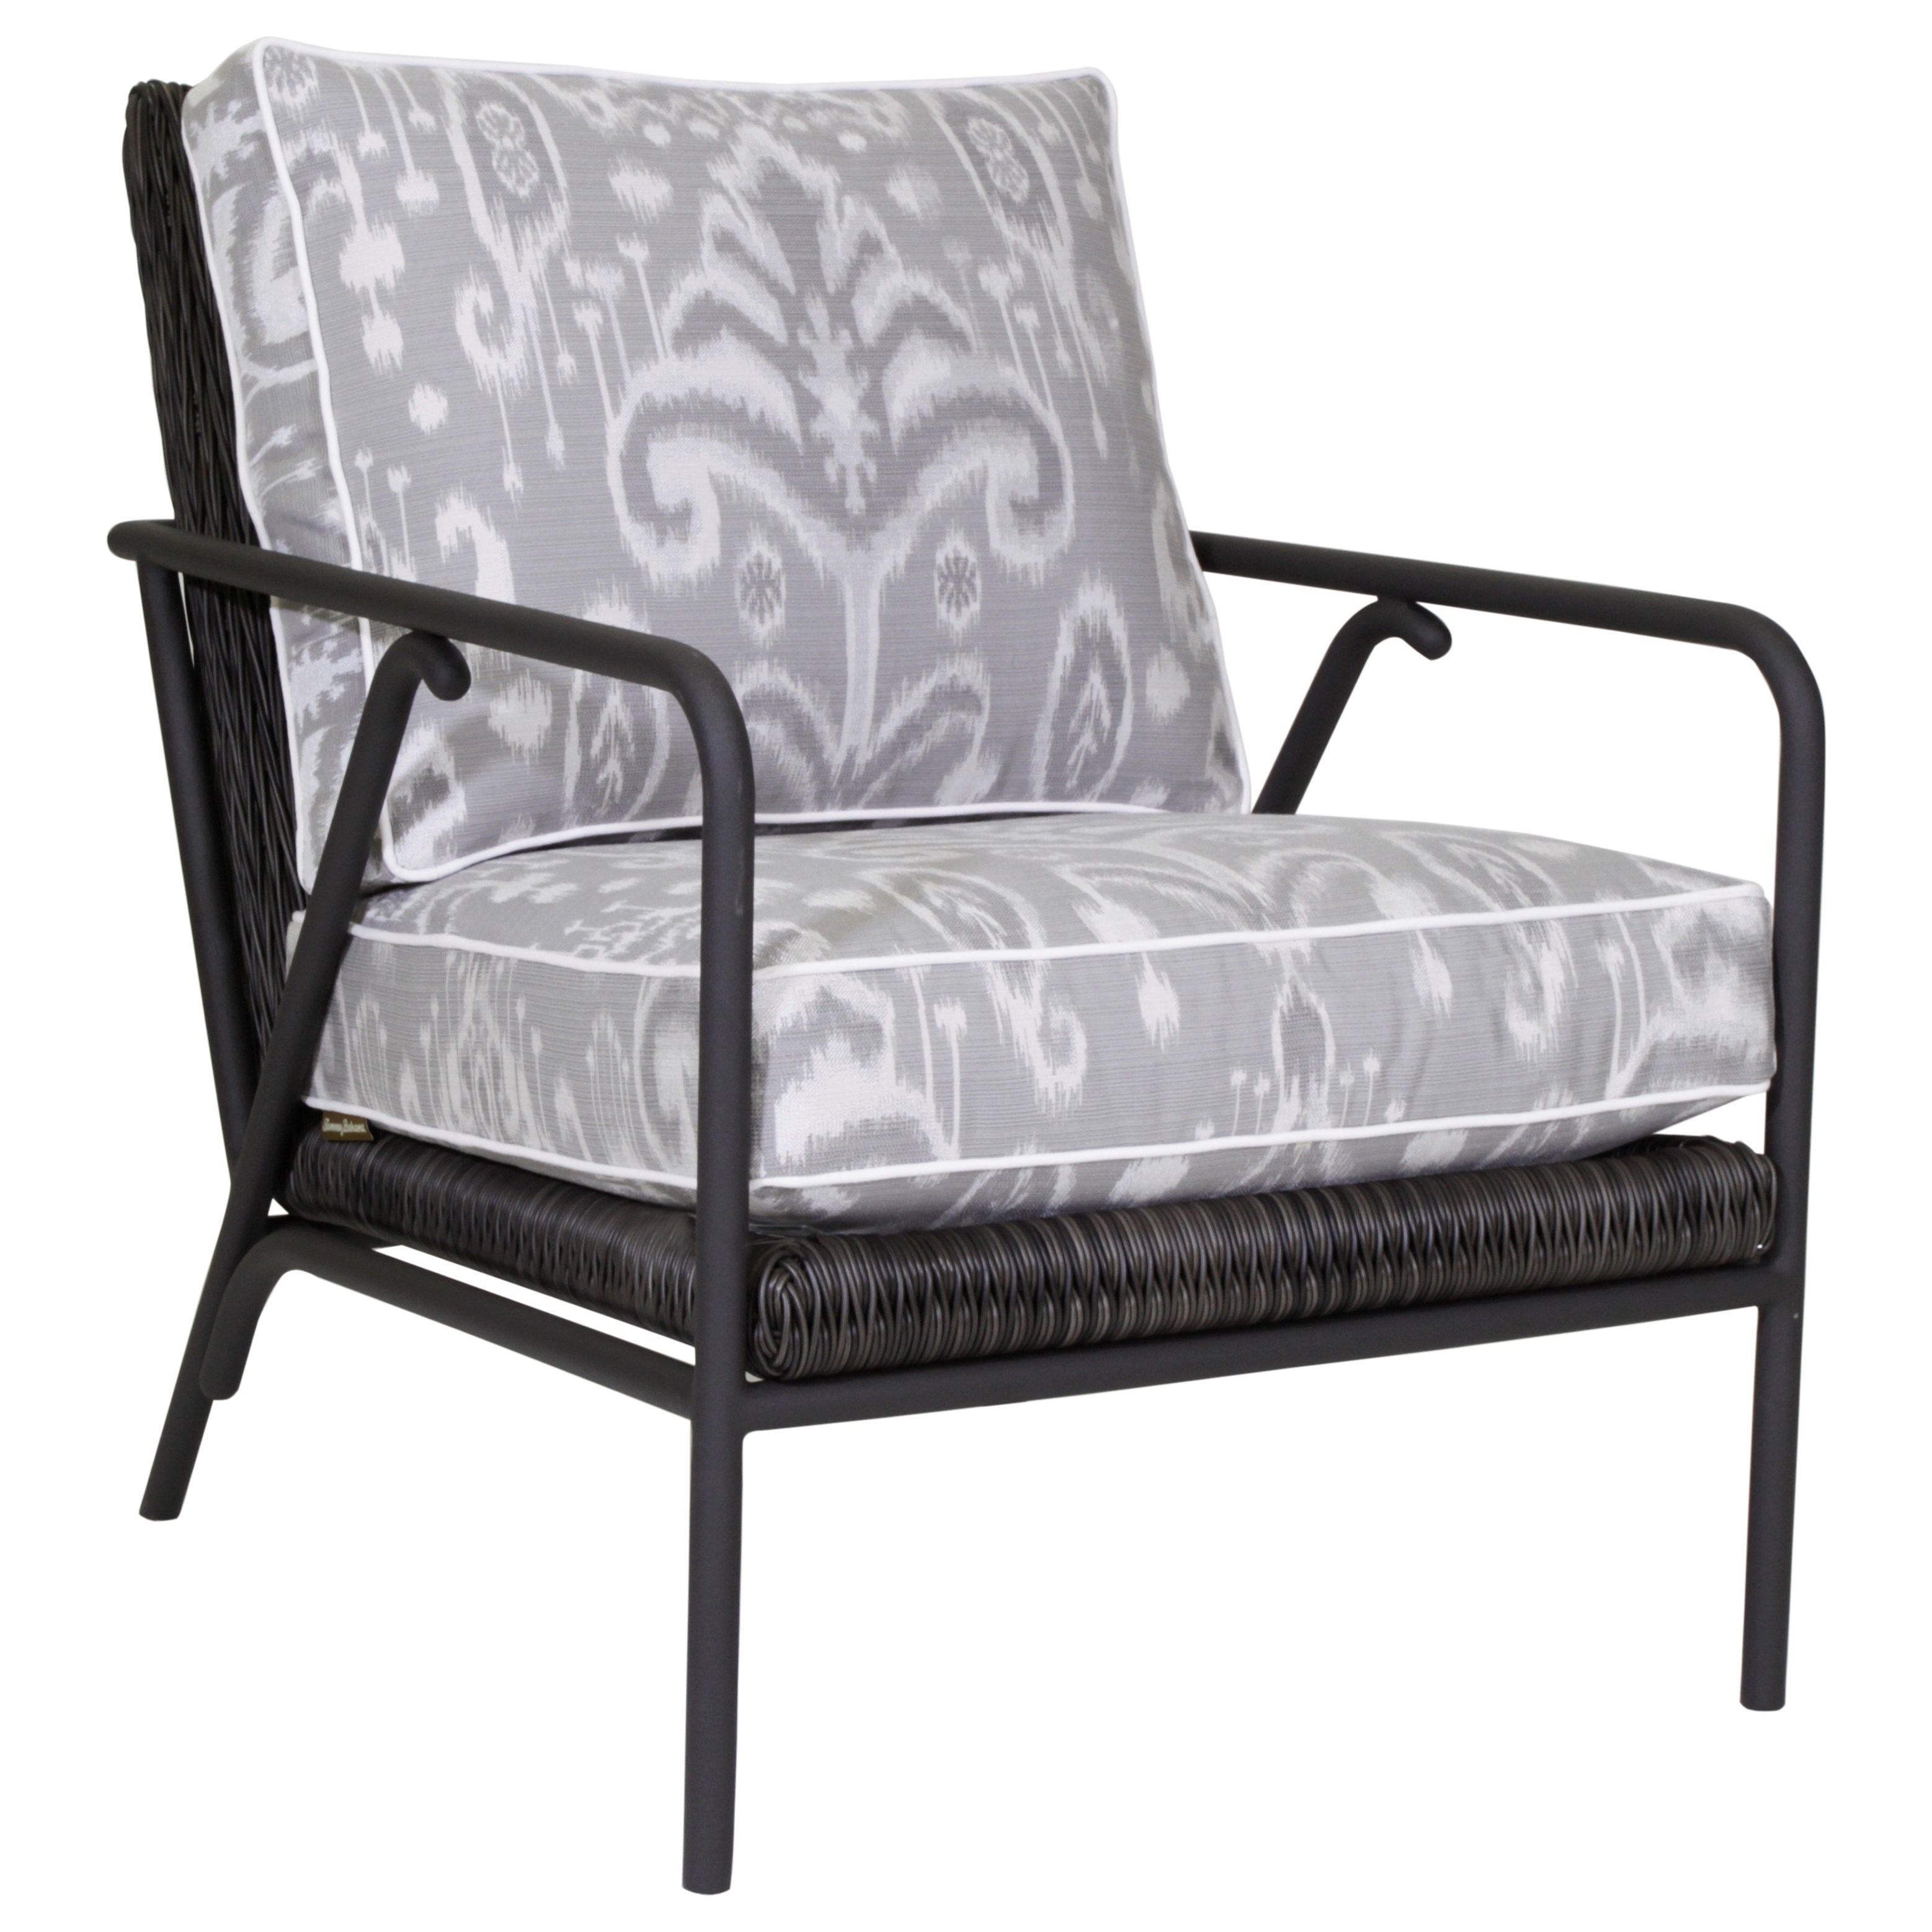 Cypress Point Ocean Terrace Outdoor Occasional Chair by Tommy Bahama Outdoor Living at Baer's Furniture